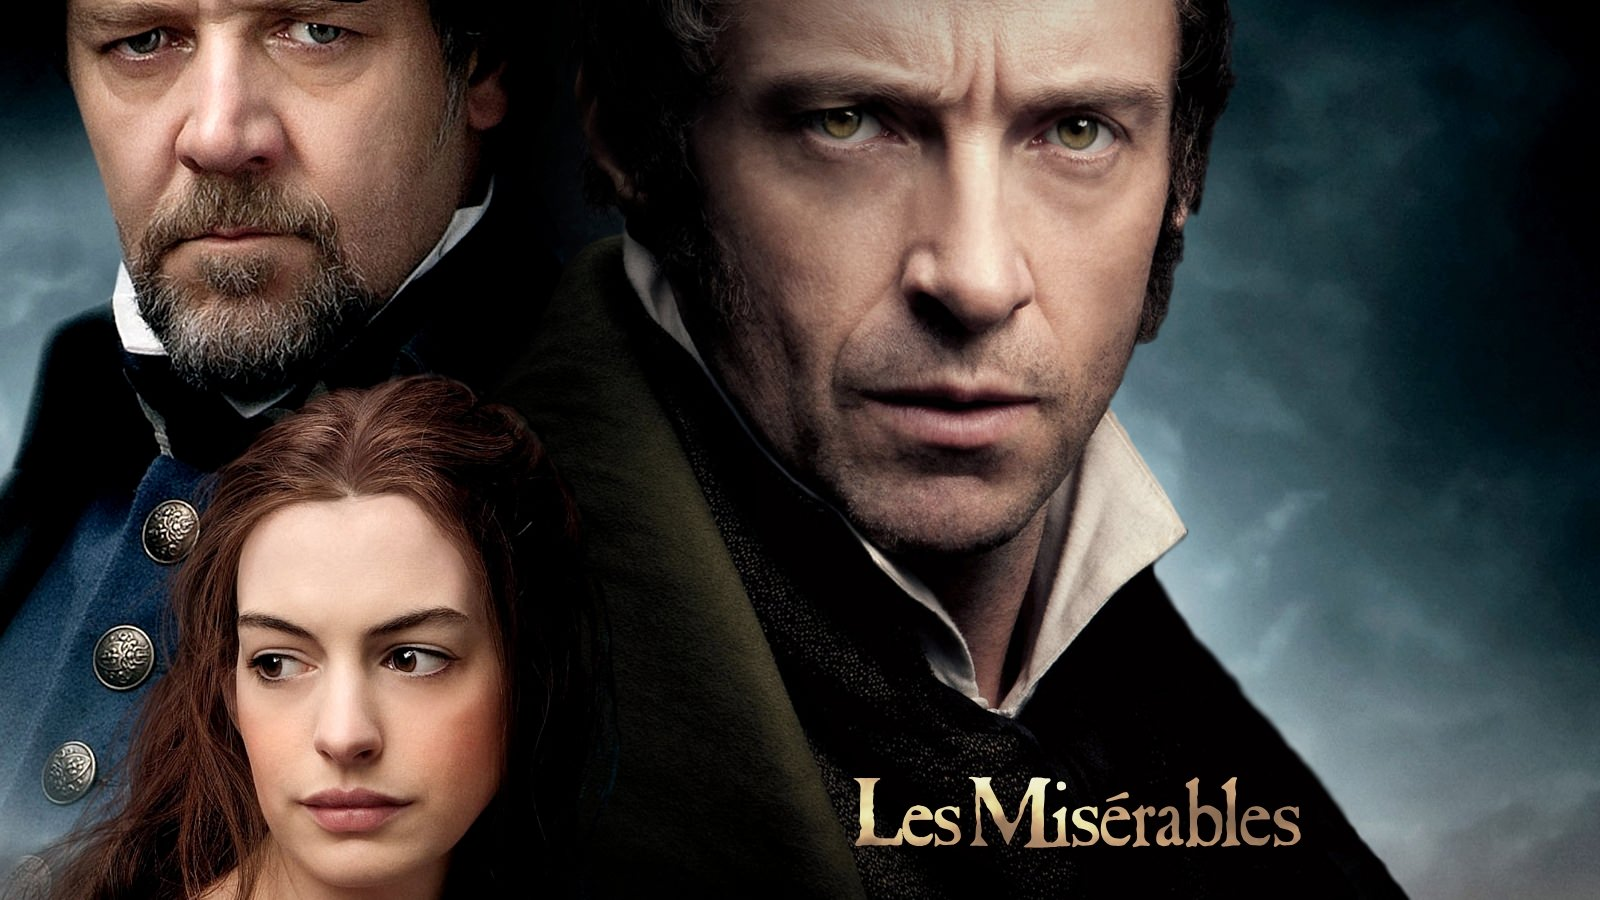 Les Miserables (SEFİLLER) 2012 // Film İncelemesi